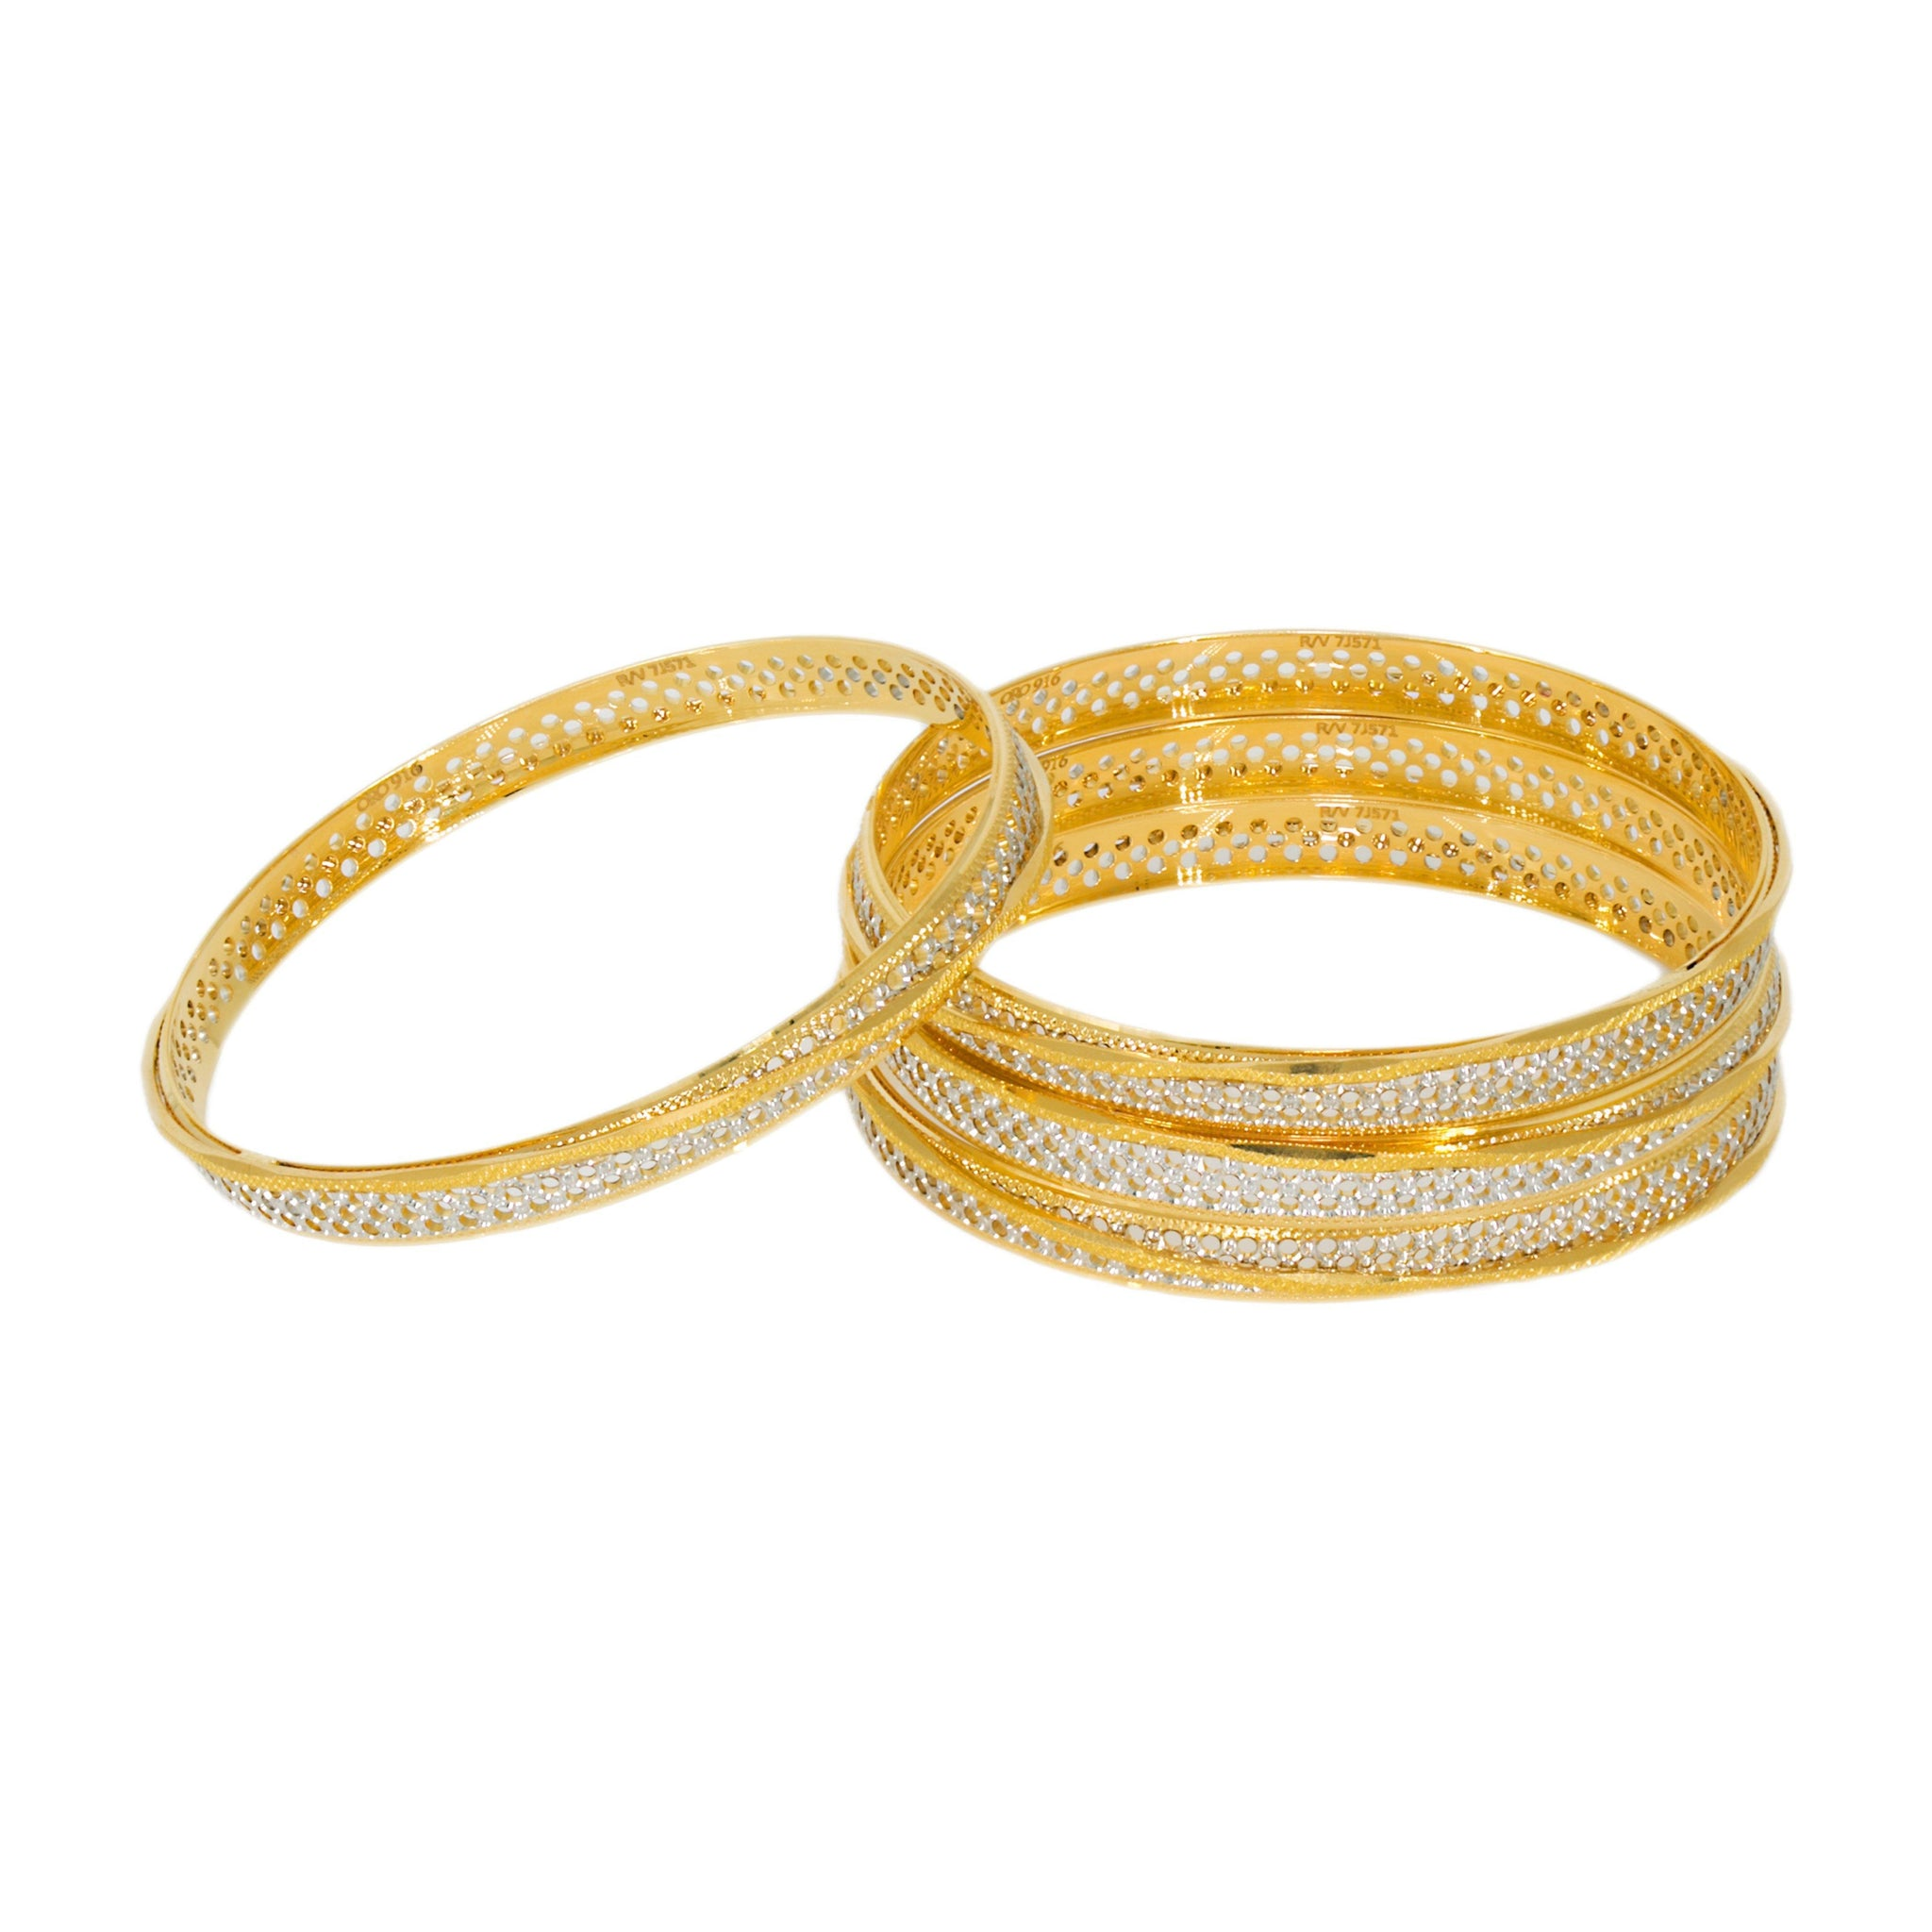 jewellers img bhima category product jewellery bangles bracelets gold bangle